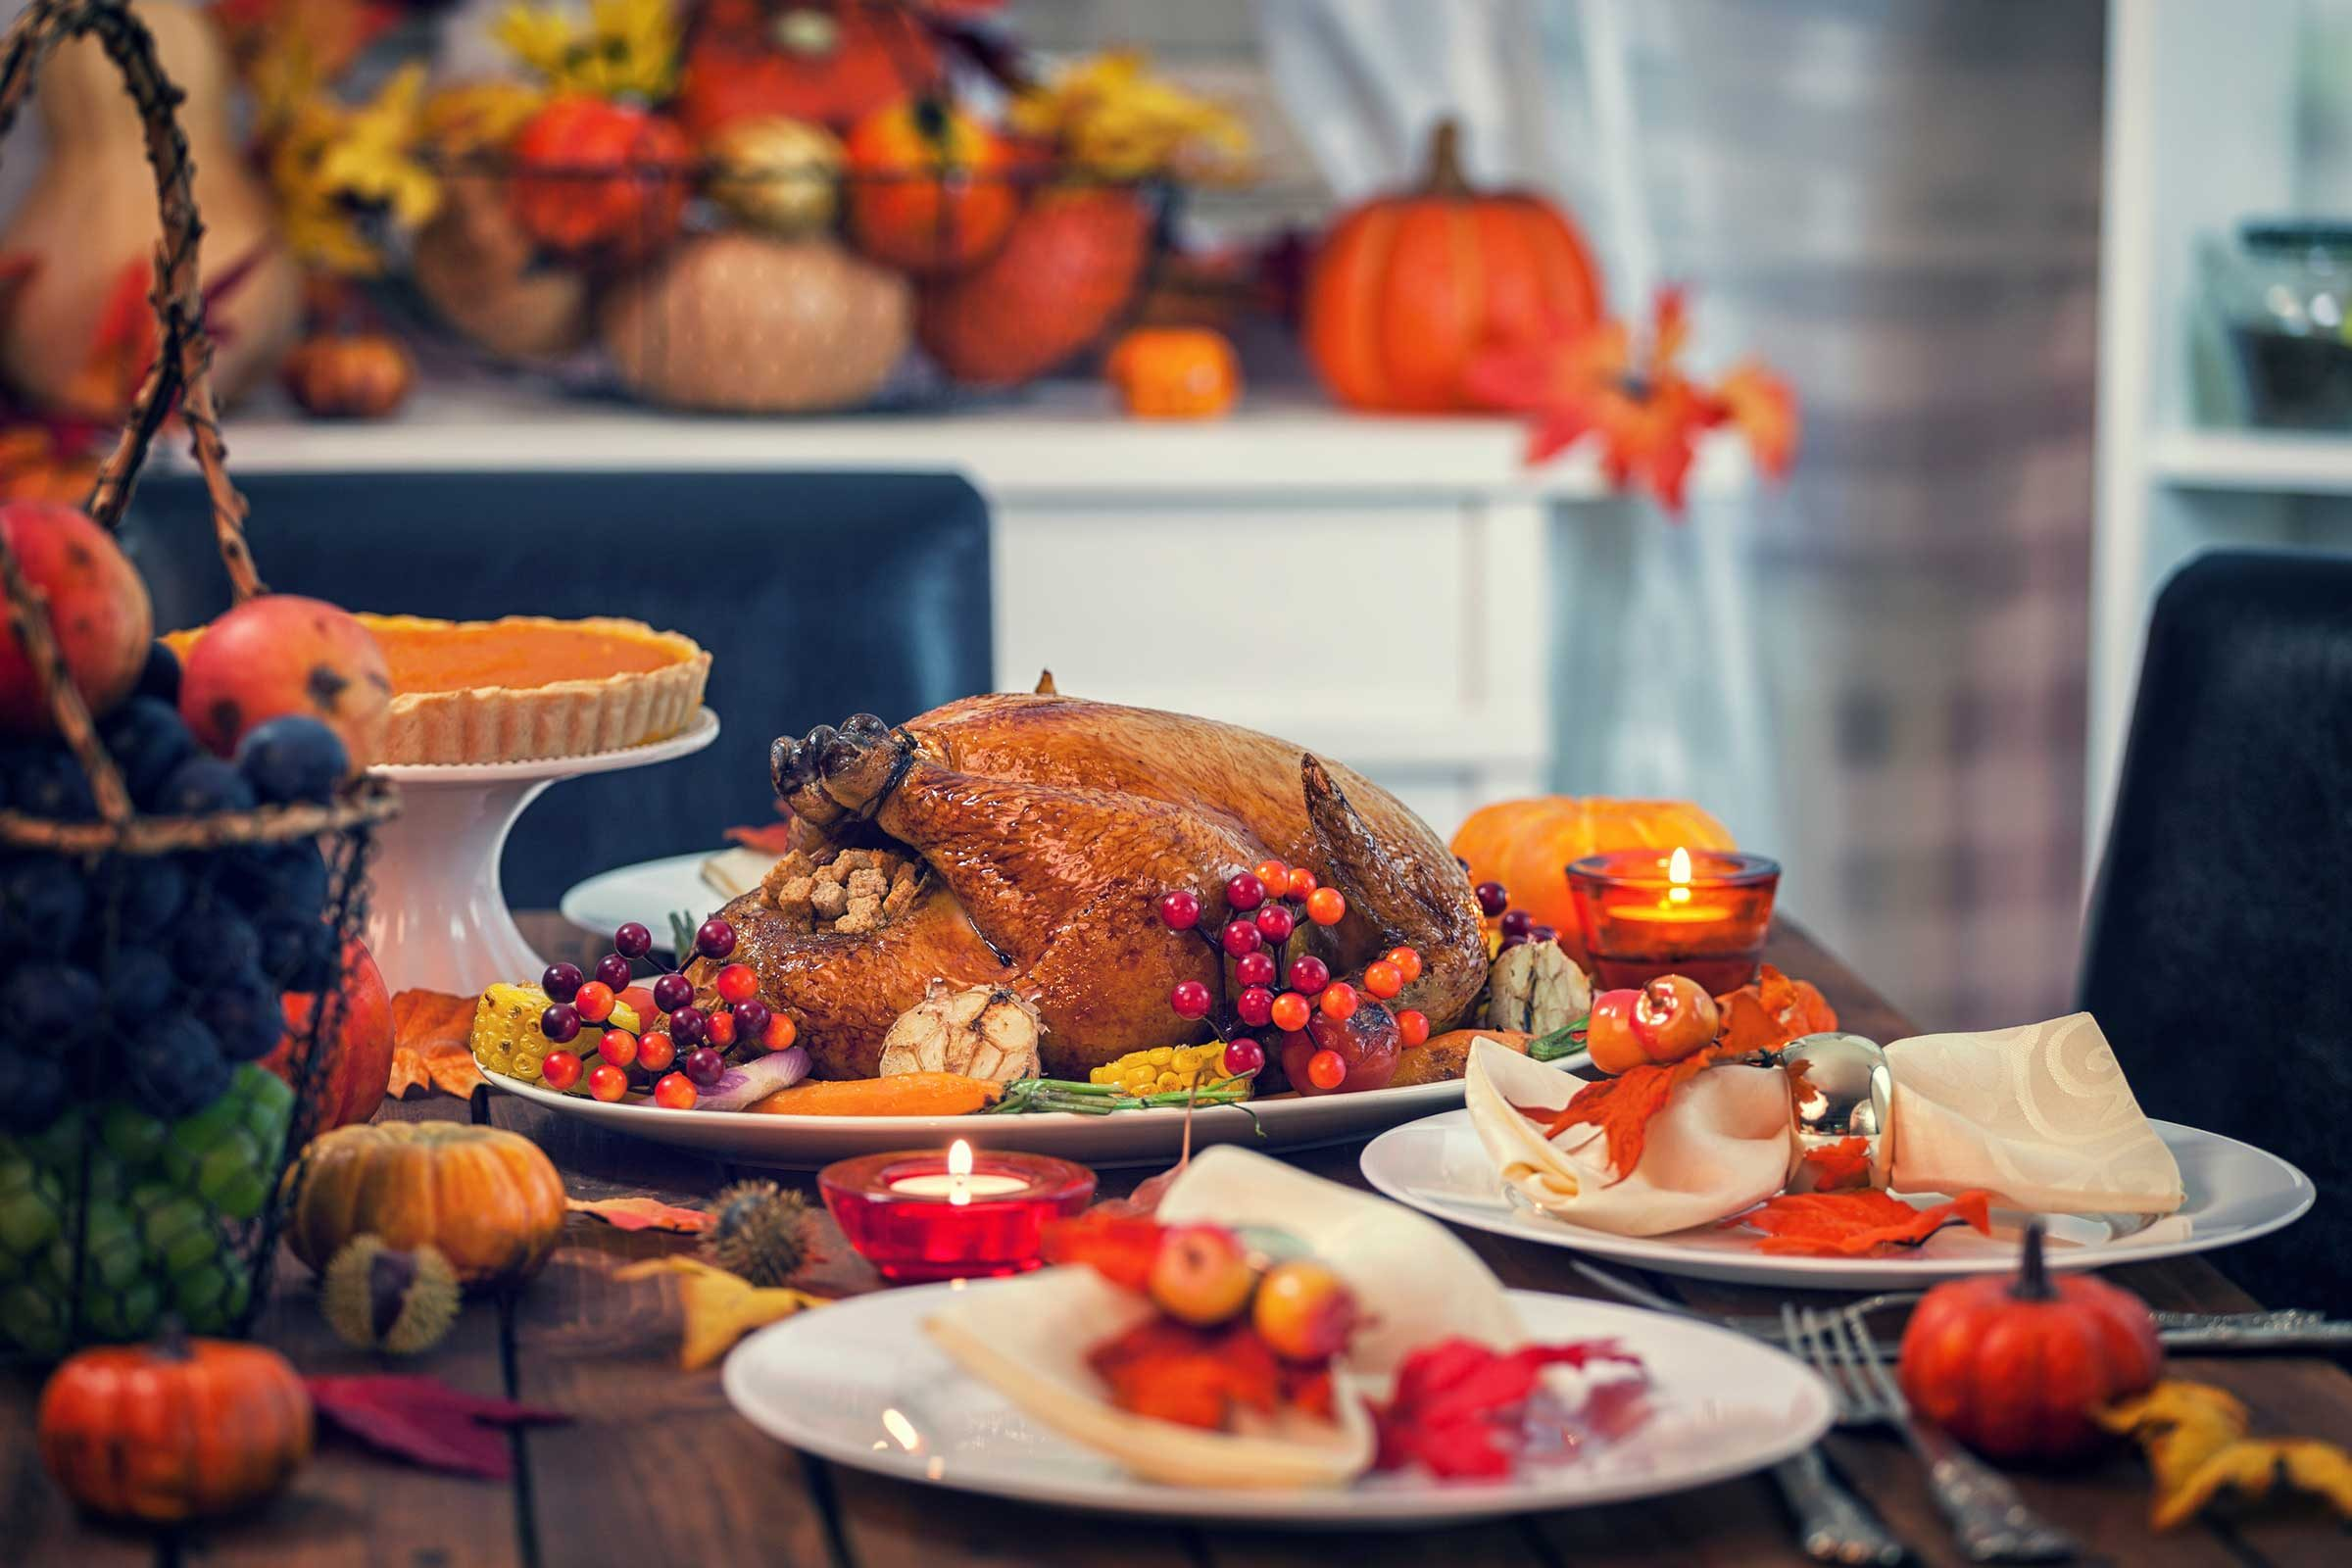 09-spread-youre-going-want-steal-thanksgiving-traditions